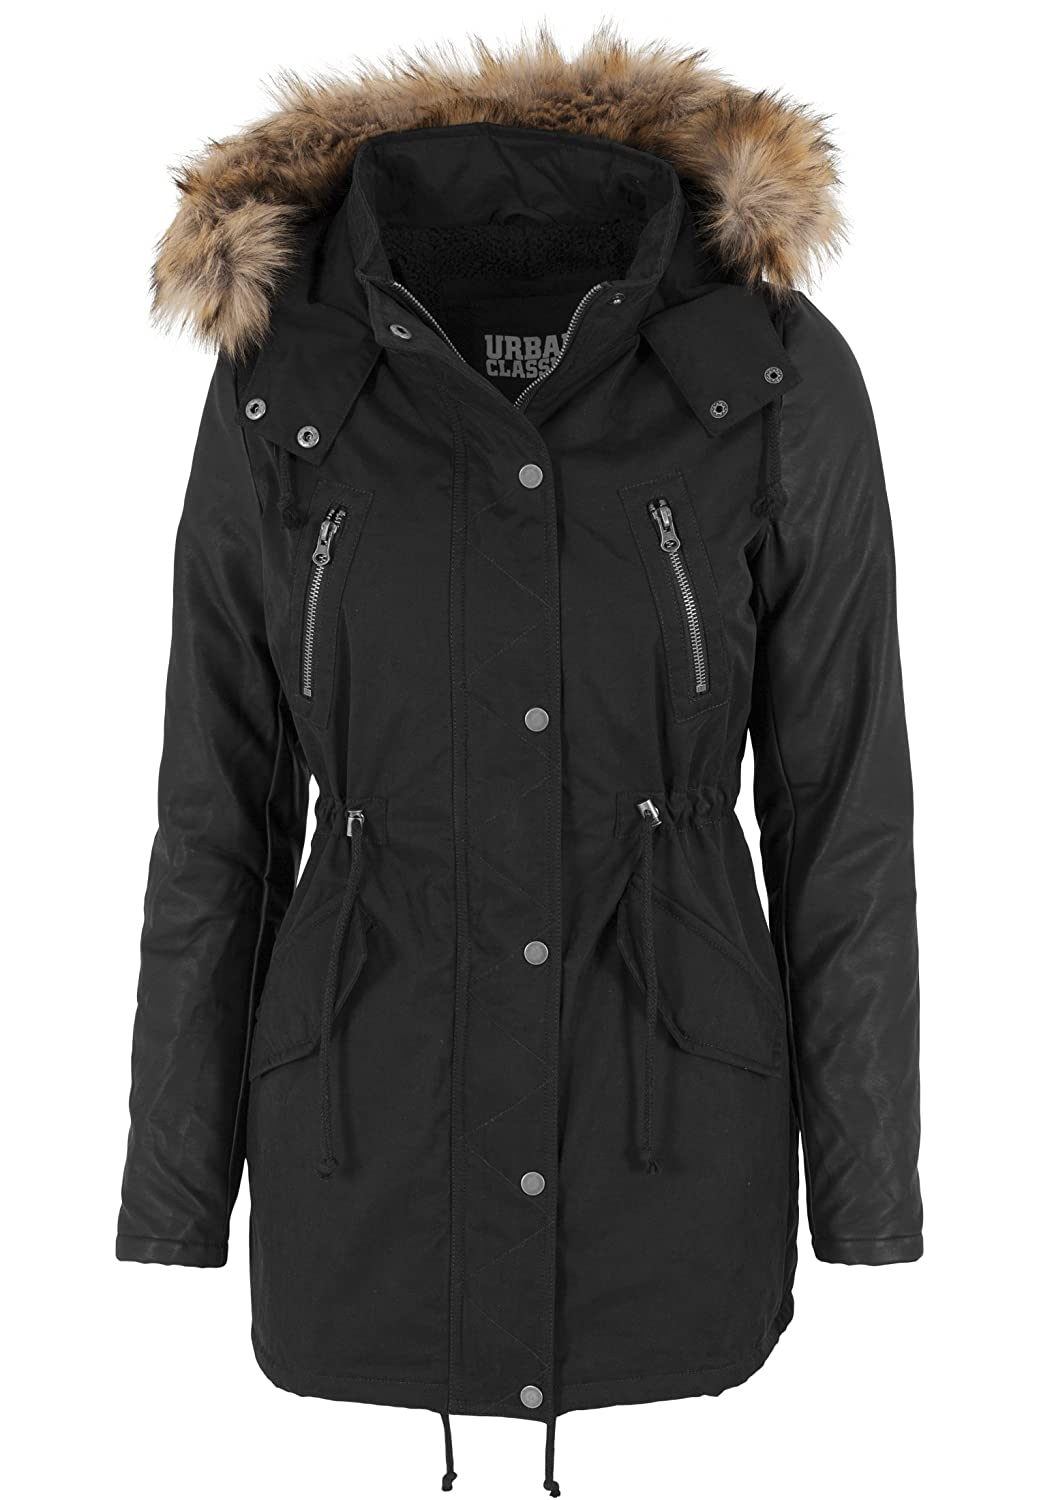 TALLA Medium (Talla del fabricante: Medium). Urban Classics Jacke Leather Imitation Sleeve Parka Chaqueta para Mujer